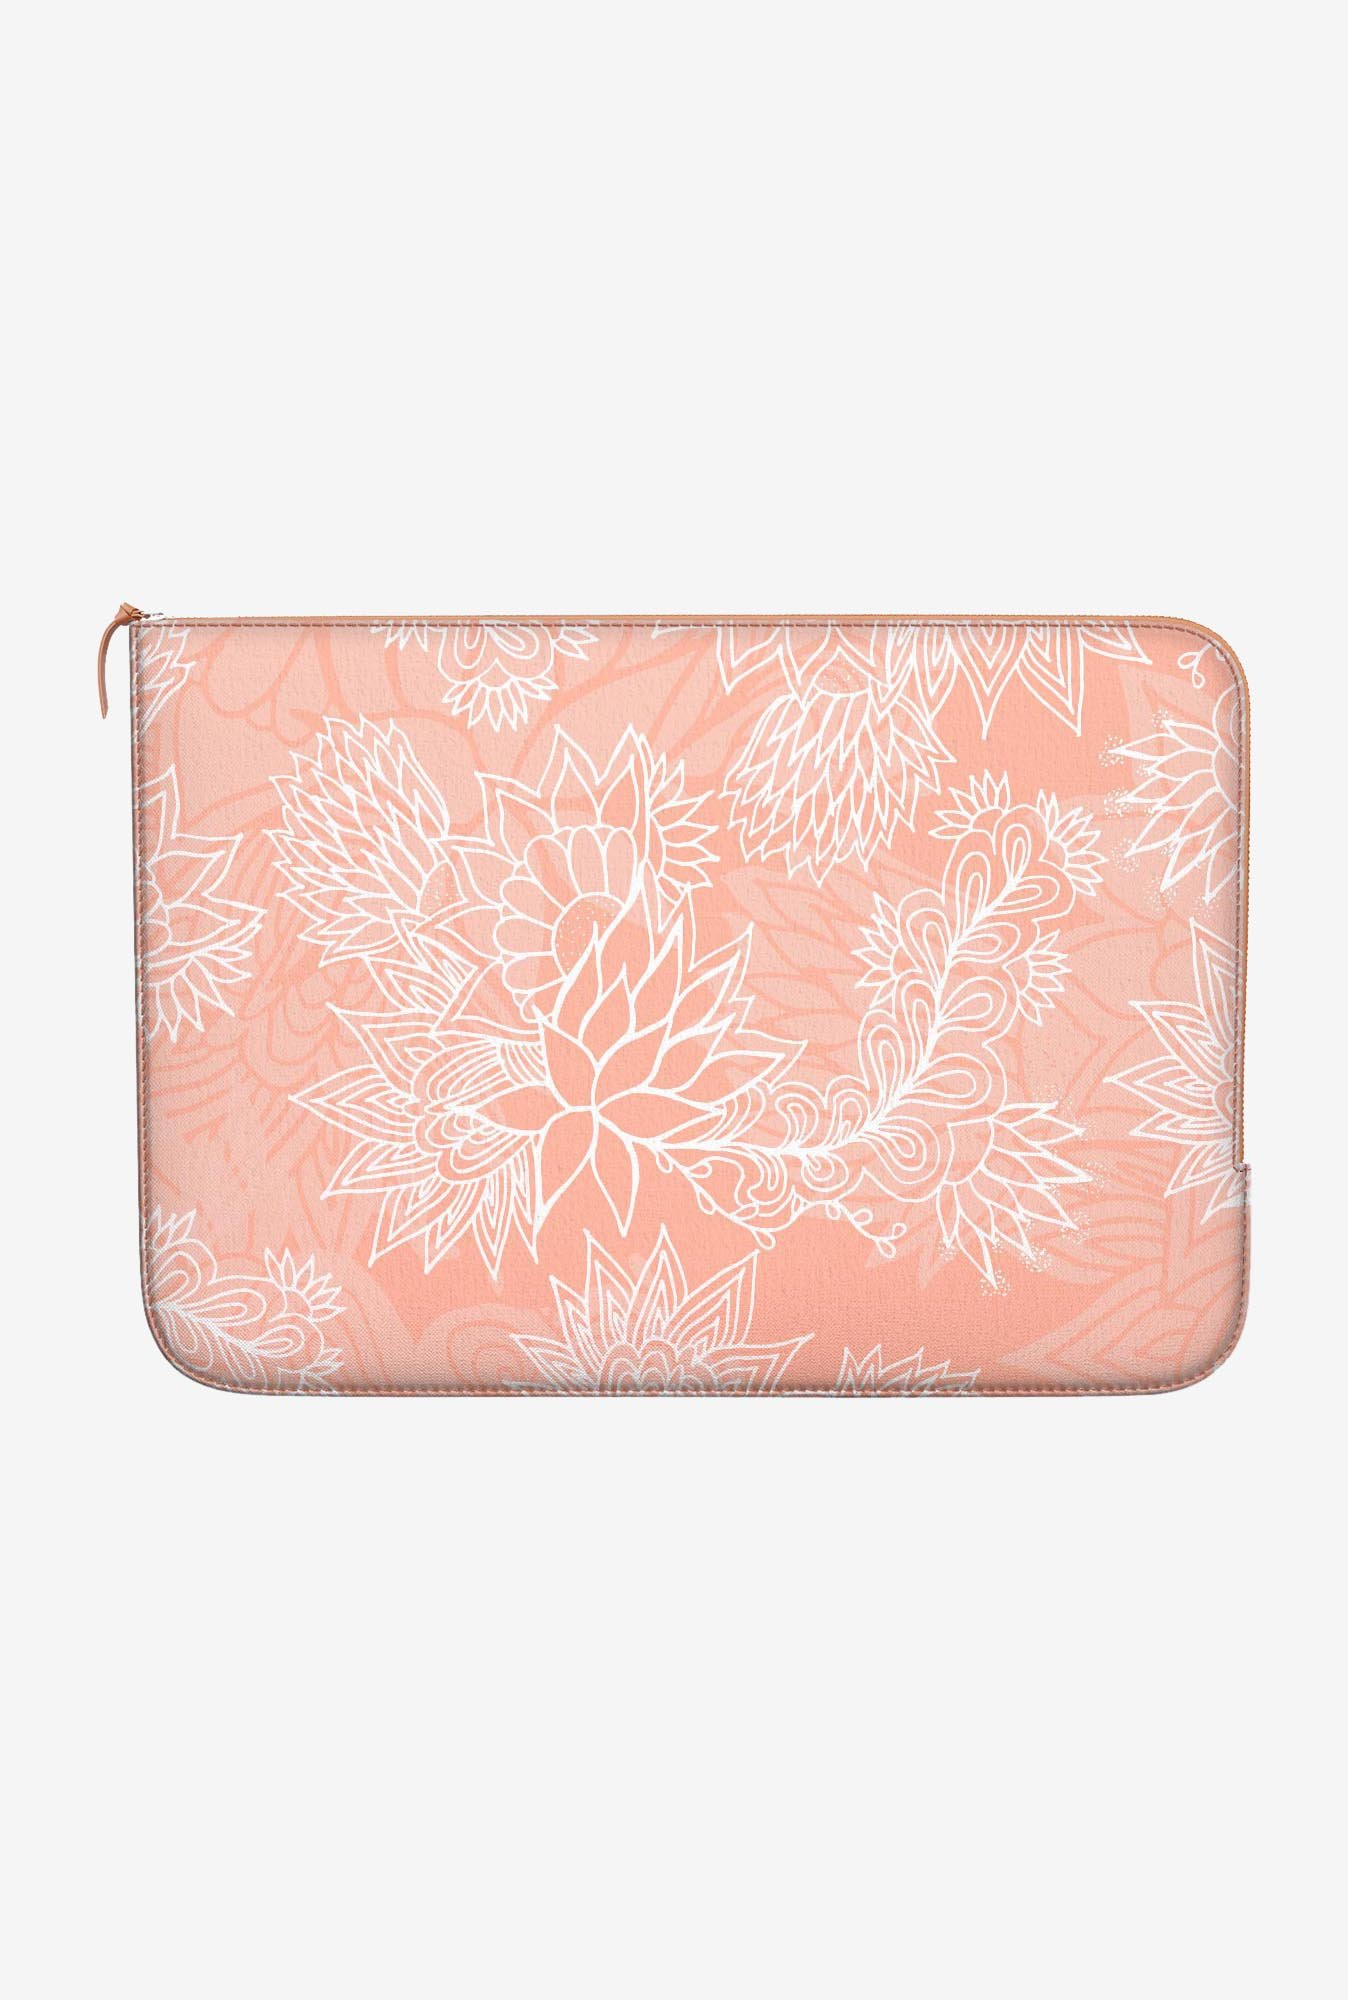 DailyObjects Chic Floral MacBook 12 Zippered Sleeve